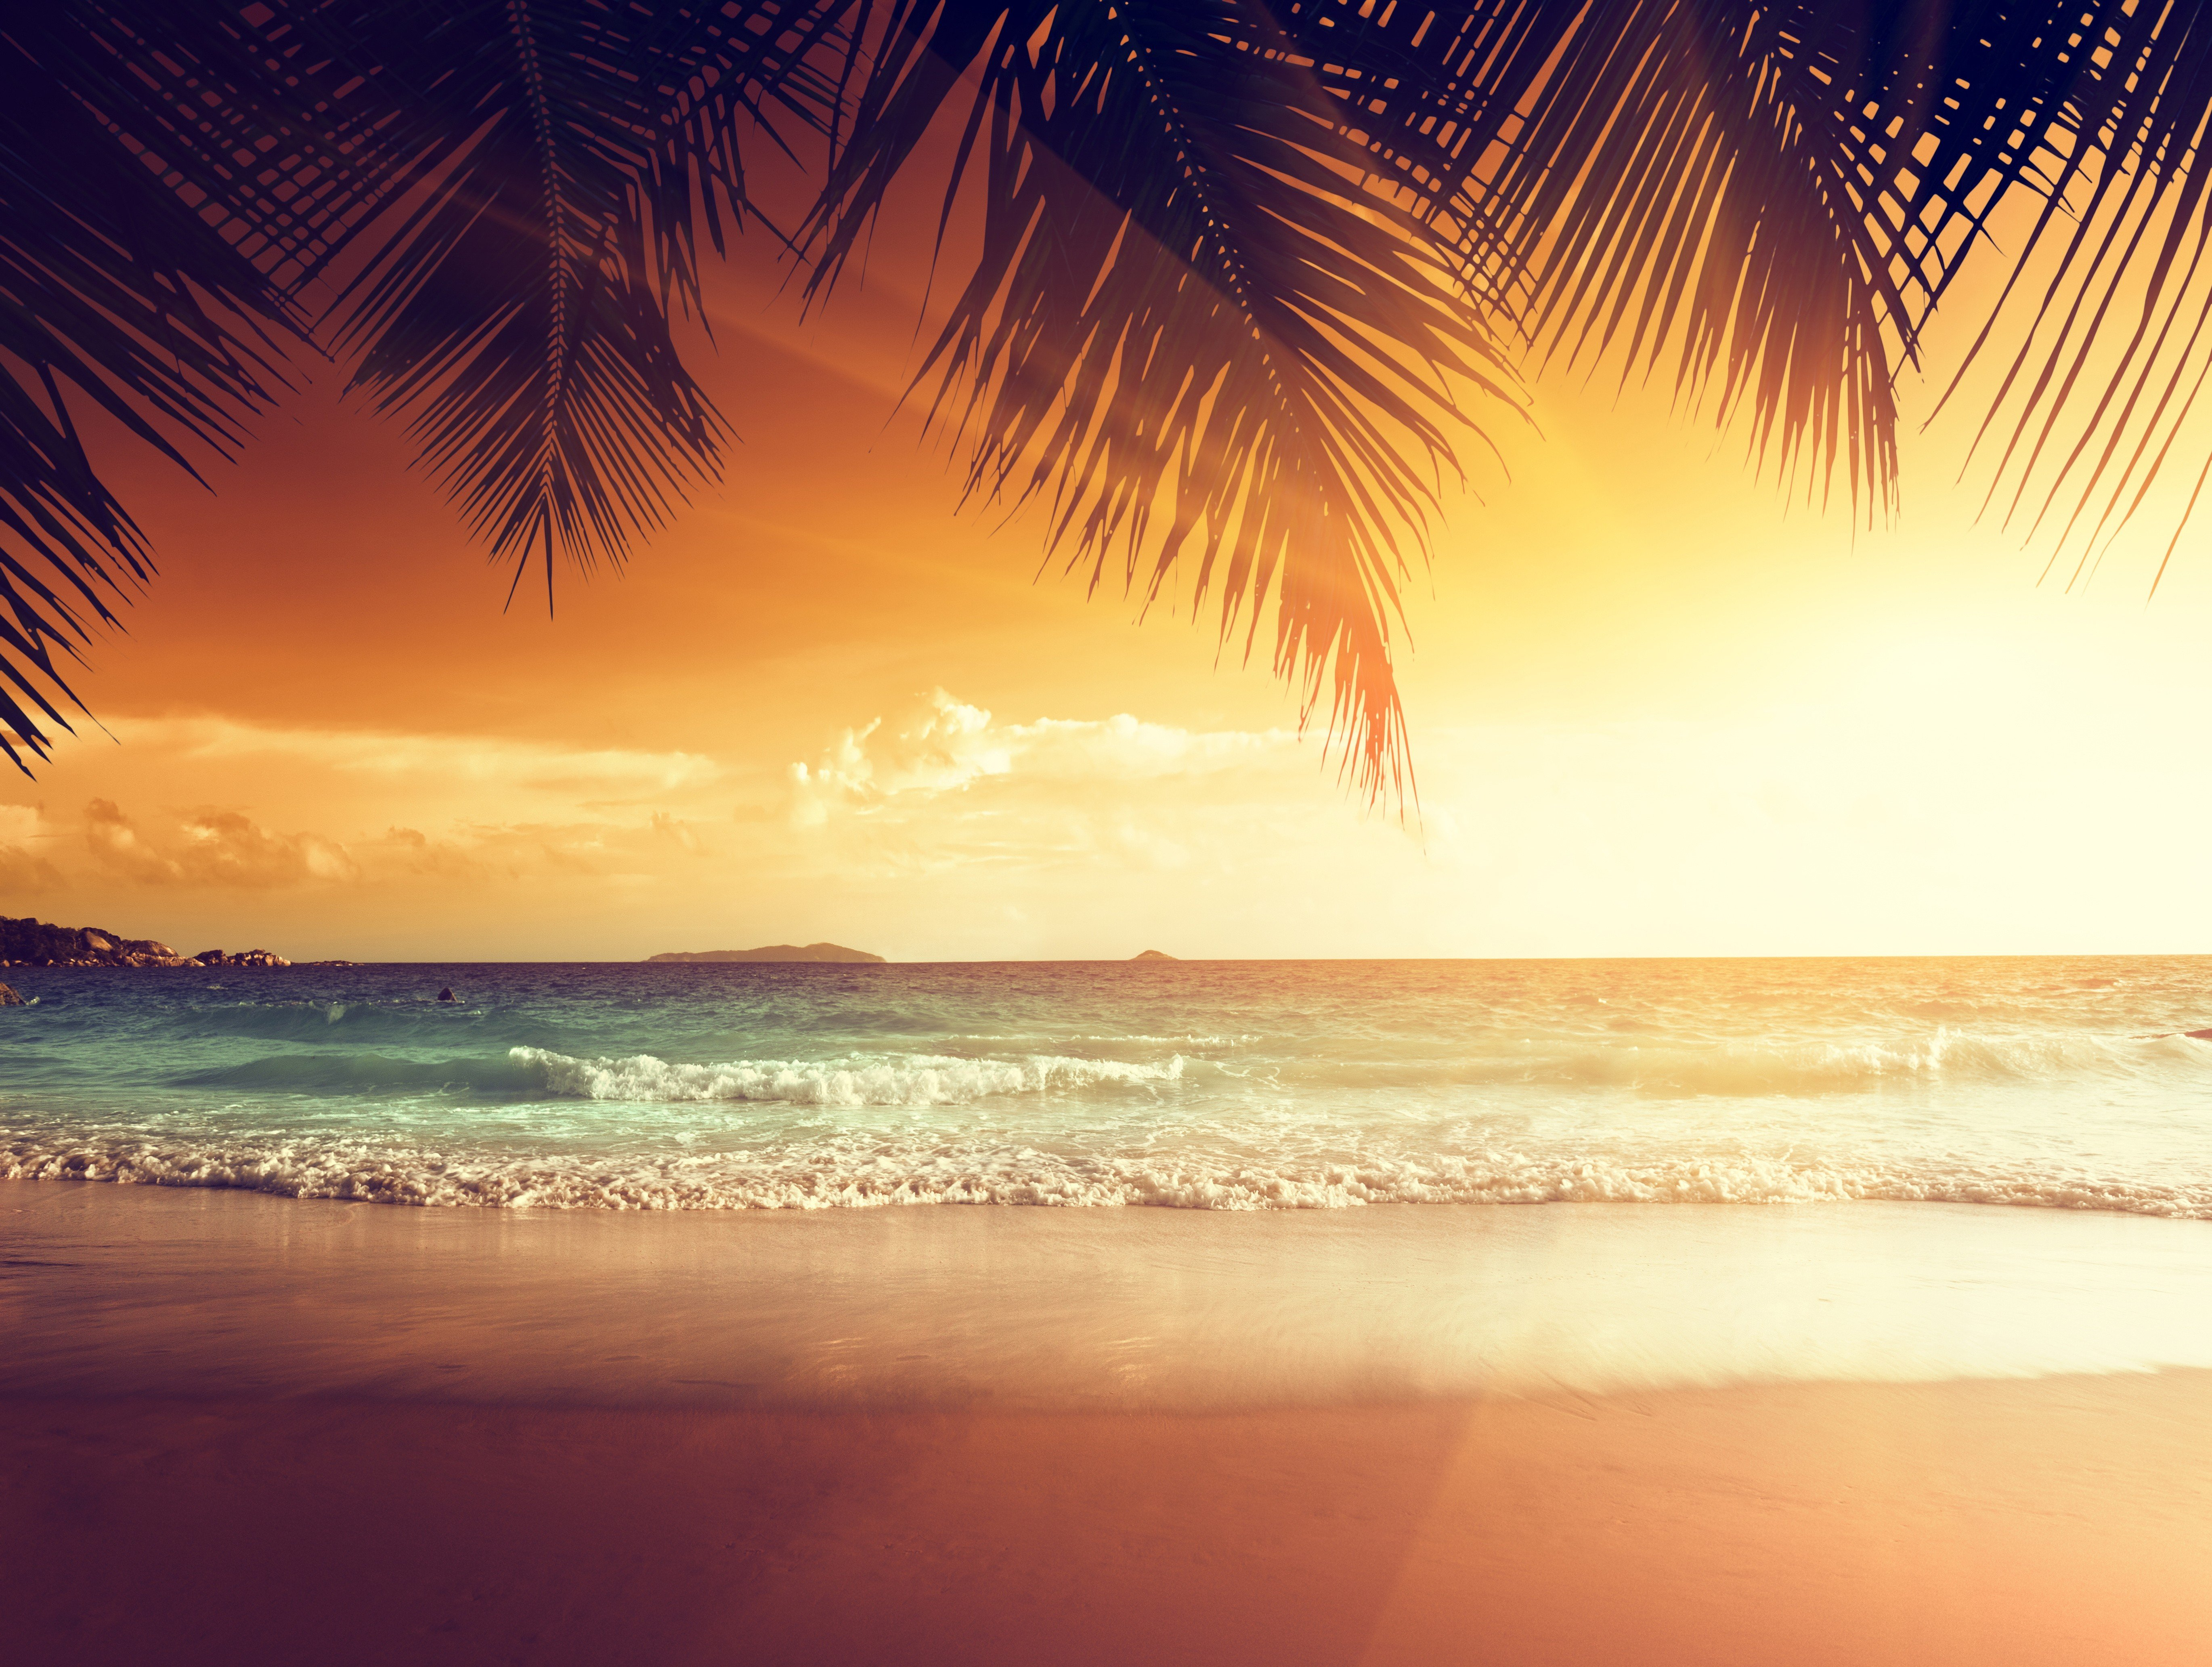 Wallpaper Tropical Sunset Beach Summer Palm Coast Sea Nature 5479x4128